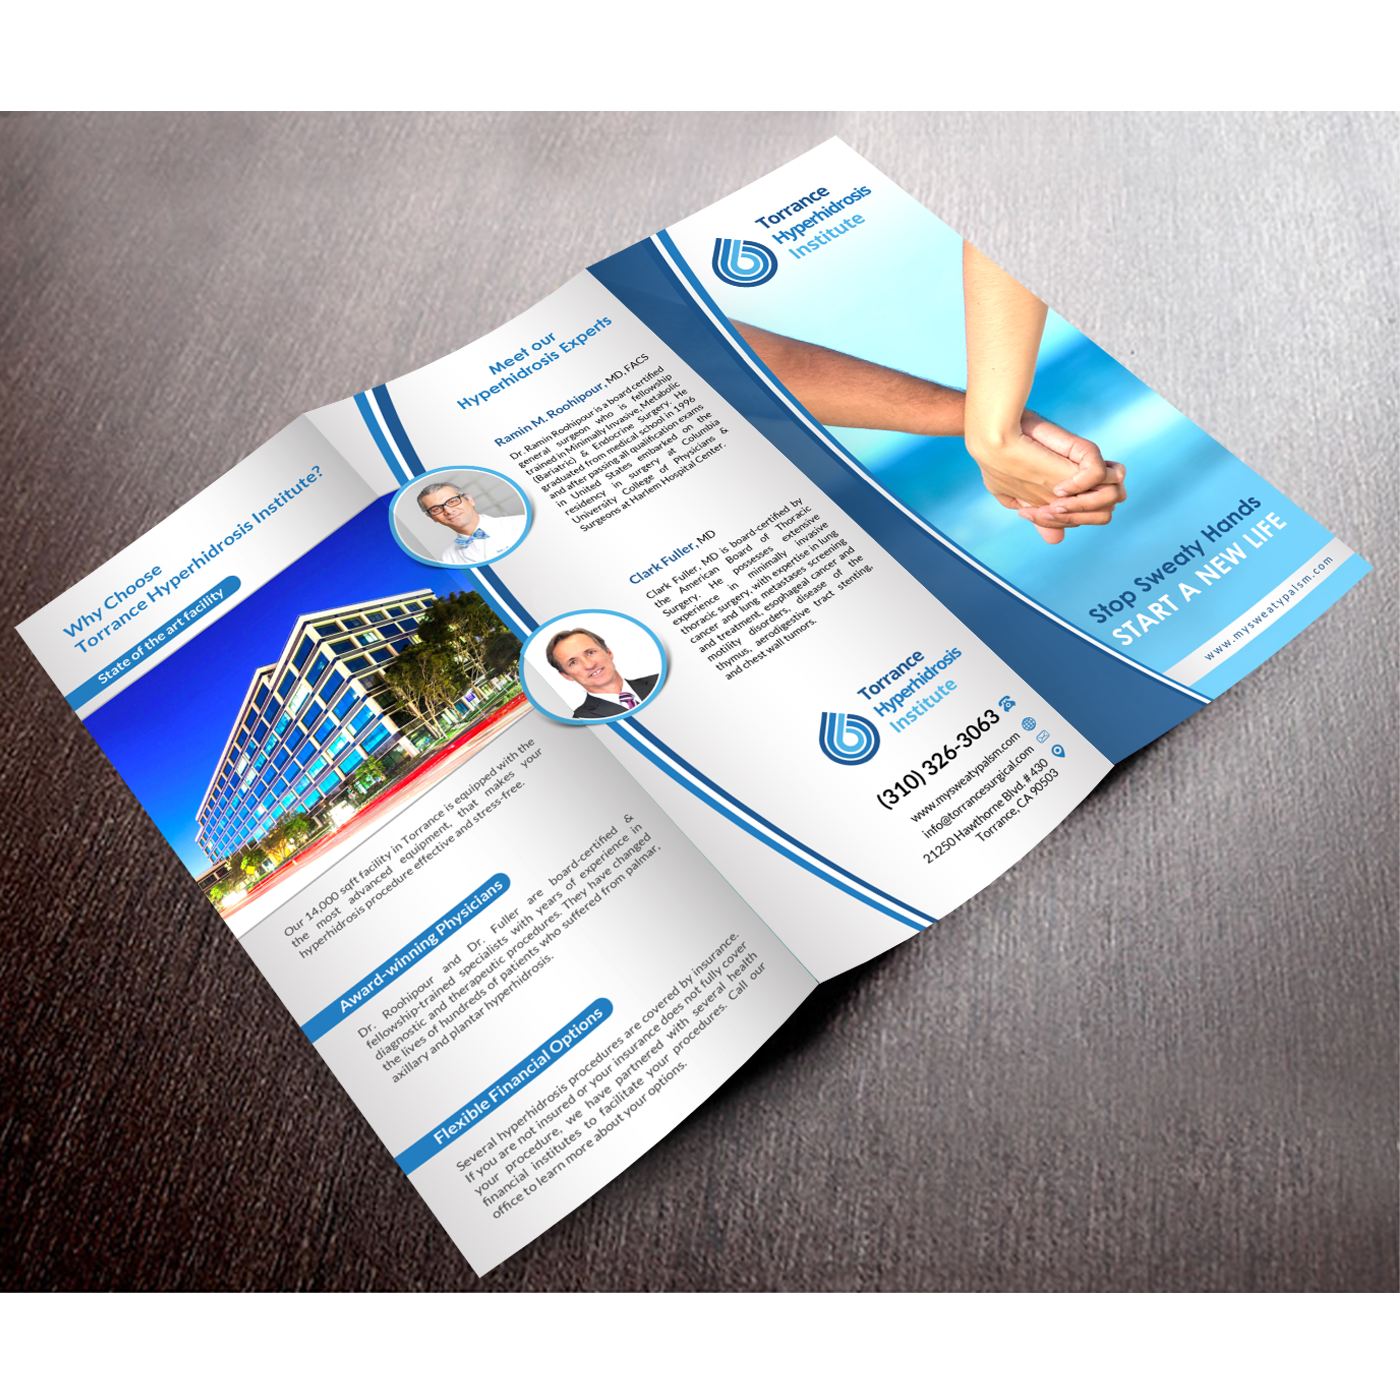 Serious, Professional, Medical Brochure Design for a Company by